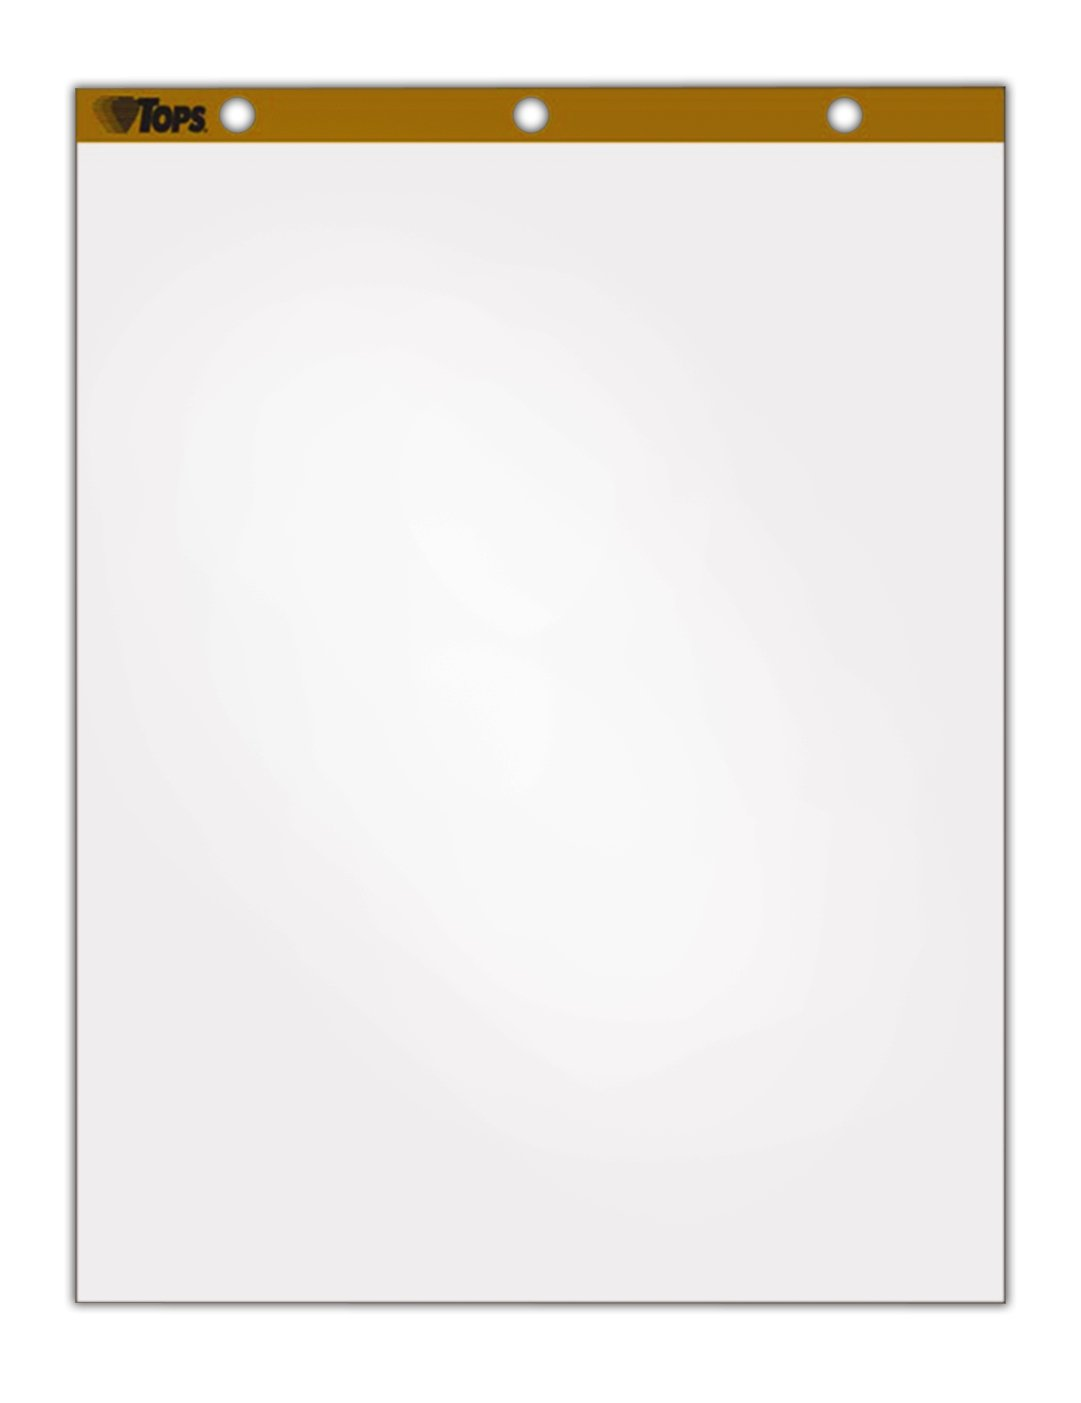 TOPS Easel Pad, 27.5 x 35 Inches, 3-Hole Punched, 50 Sheets, White, Carton of 4 Easel Pads (79011) by TOPS